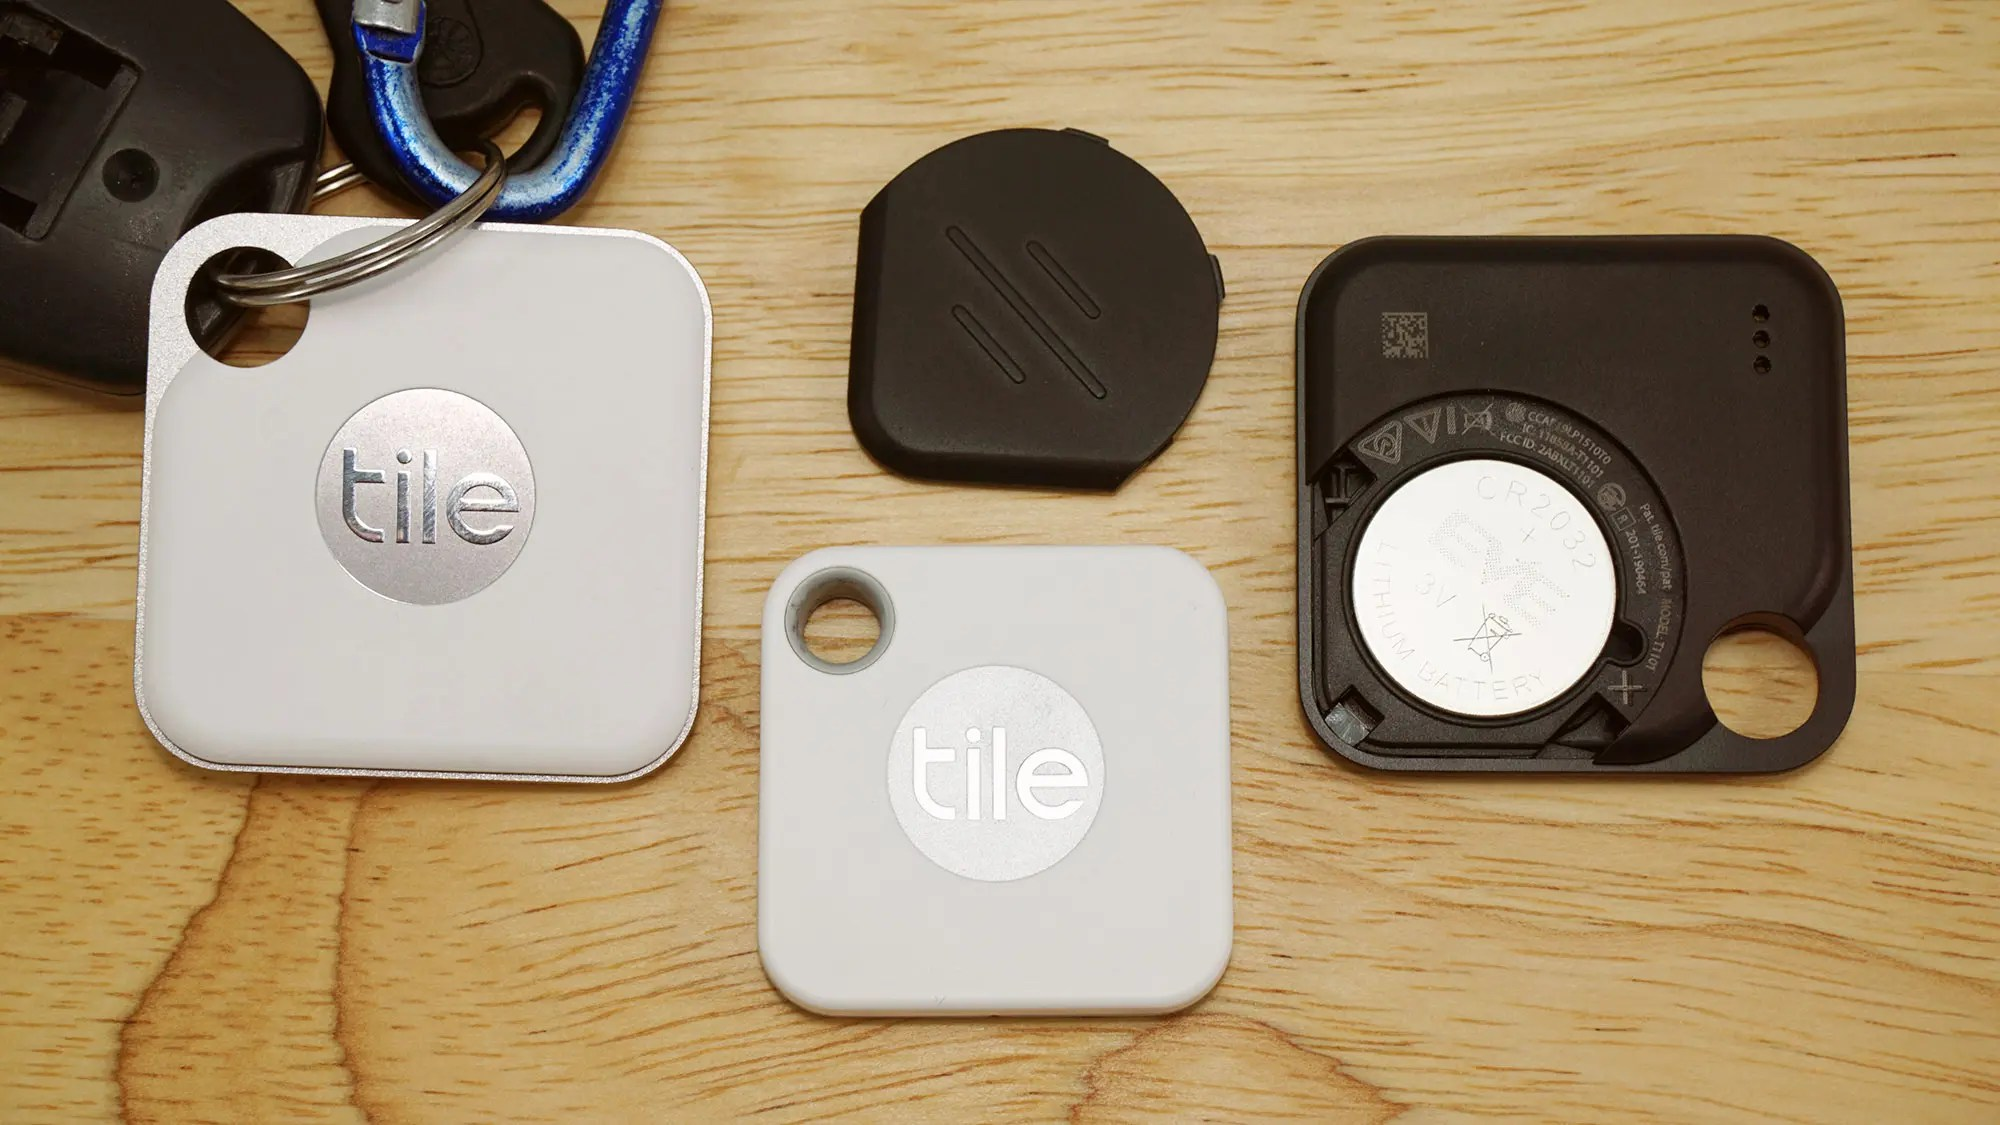 tile s new mate pro and slim trackers